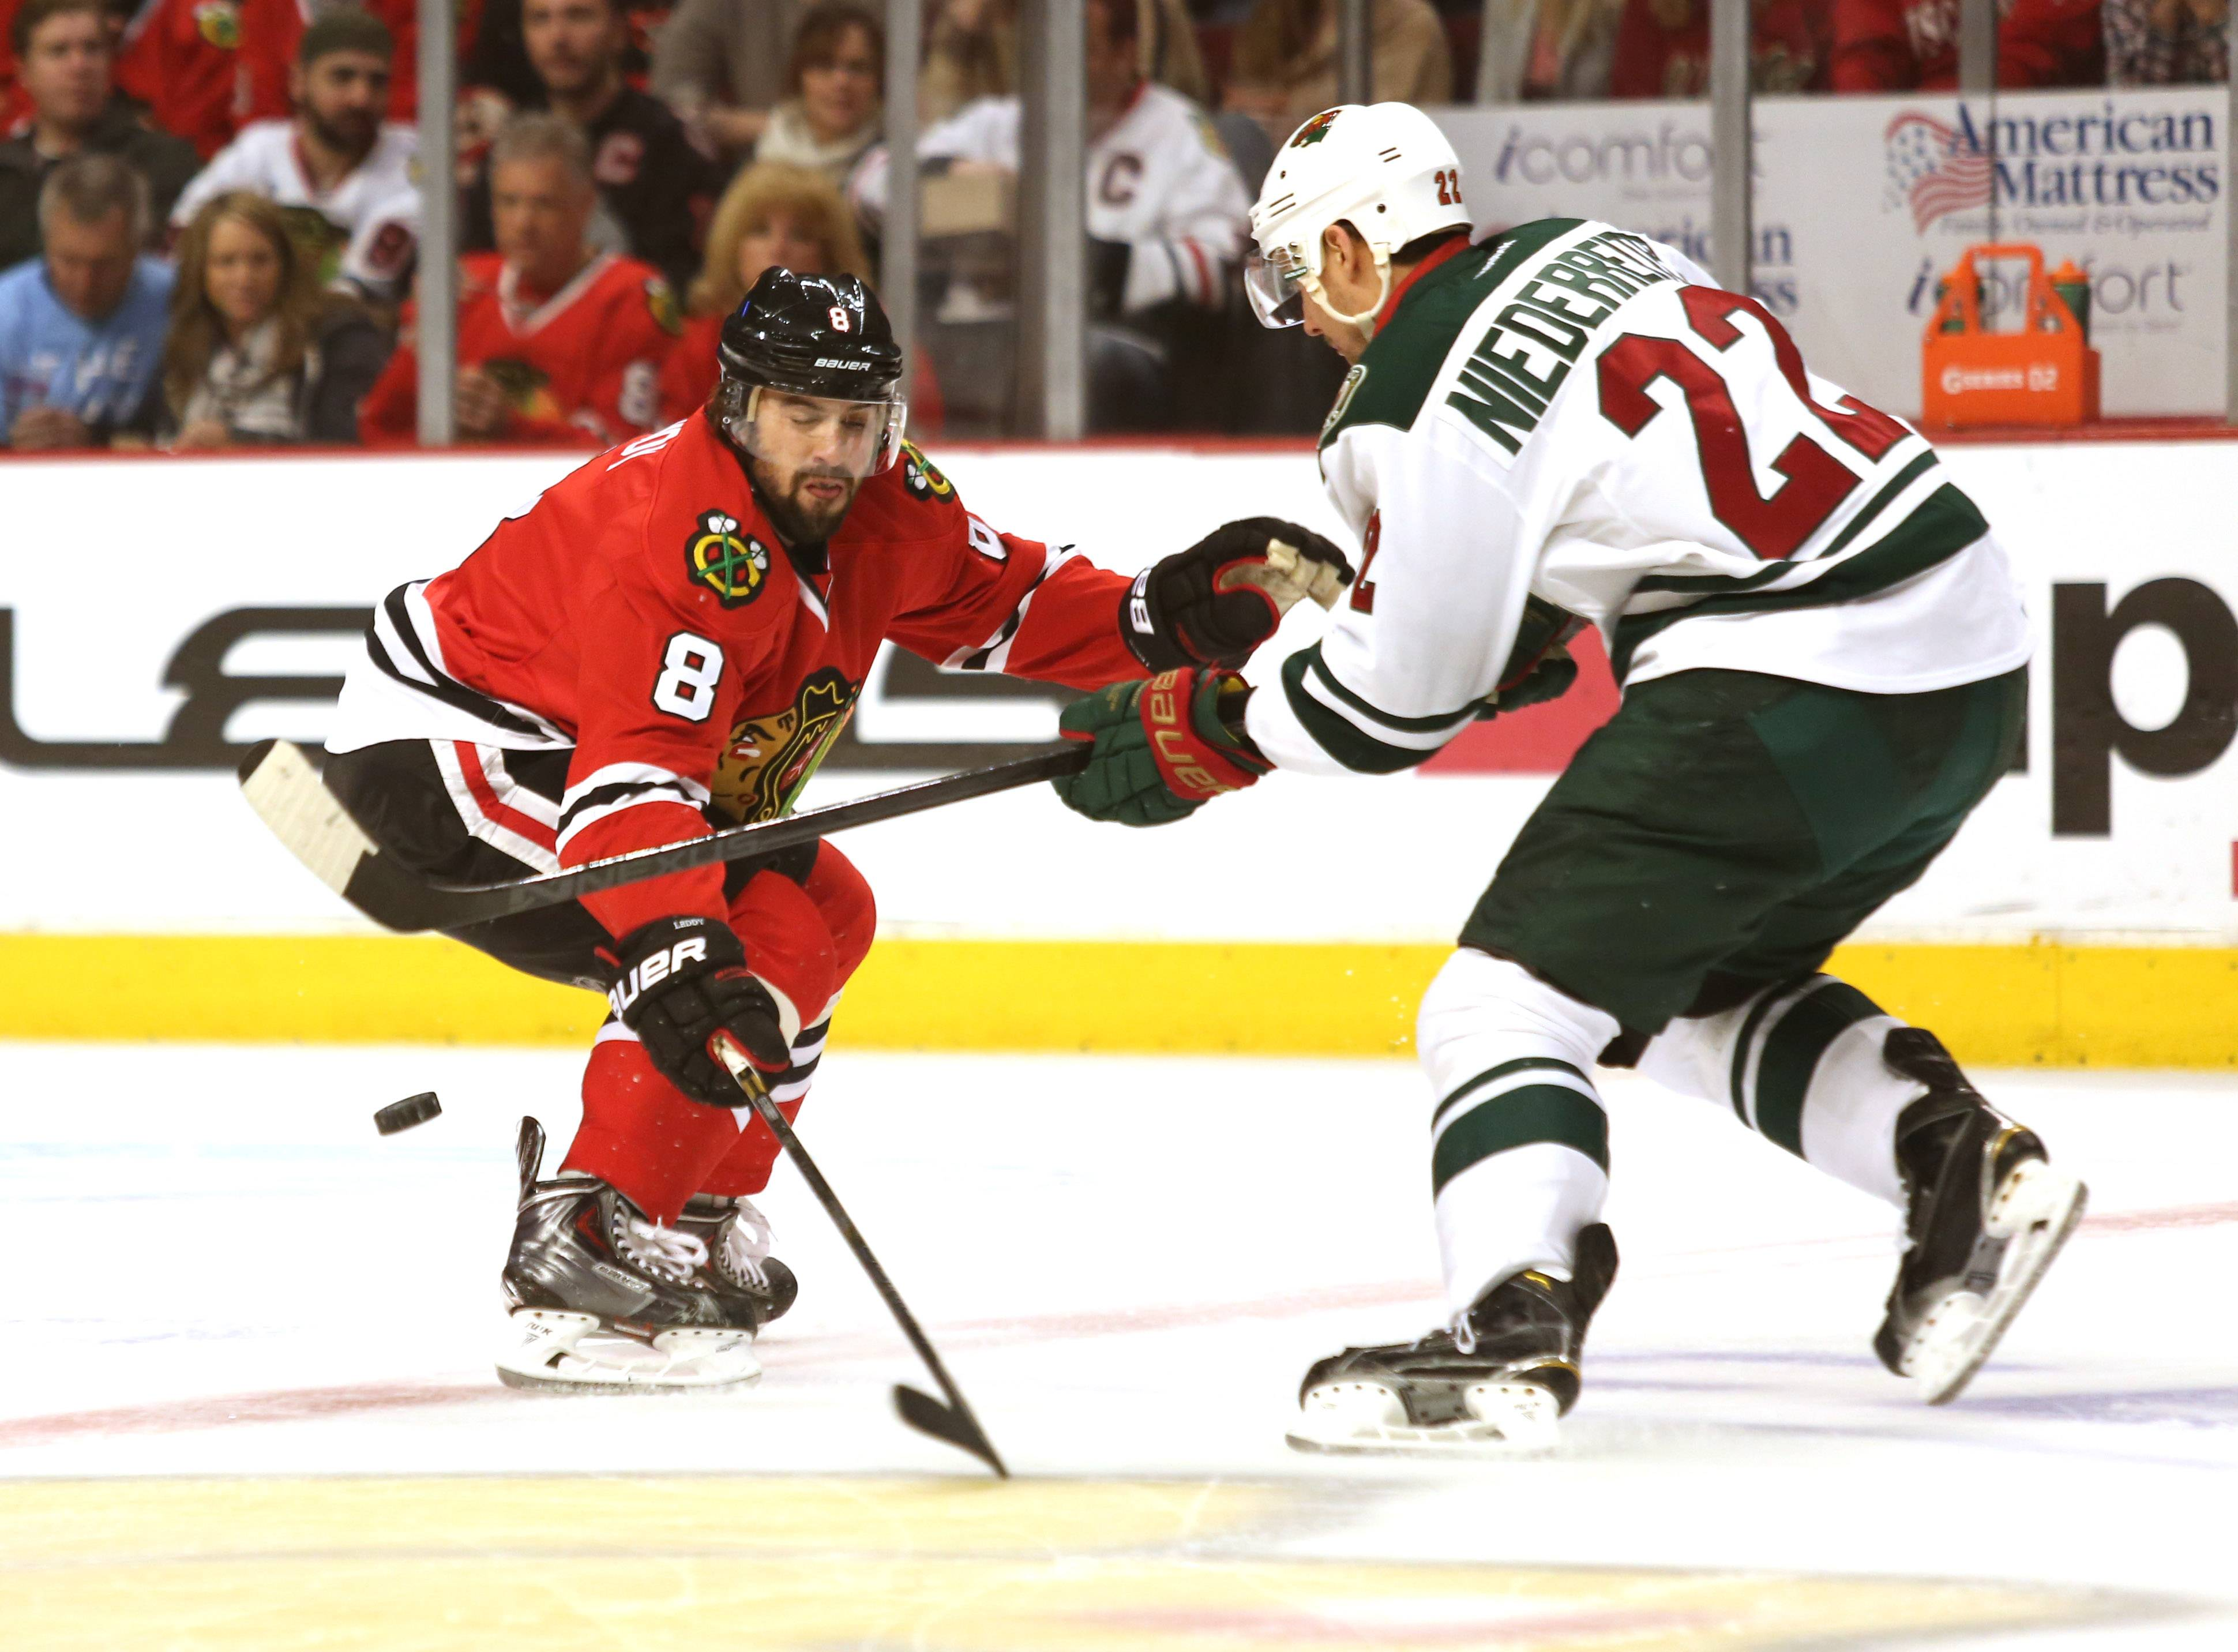 Blackhawks defenseman Nick Leddy pressures the Wild's Nino Niederreiter during the first period Friday in Game 1 of their second-round playoff series at the United Center.